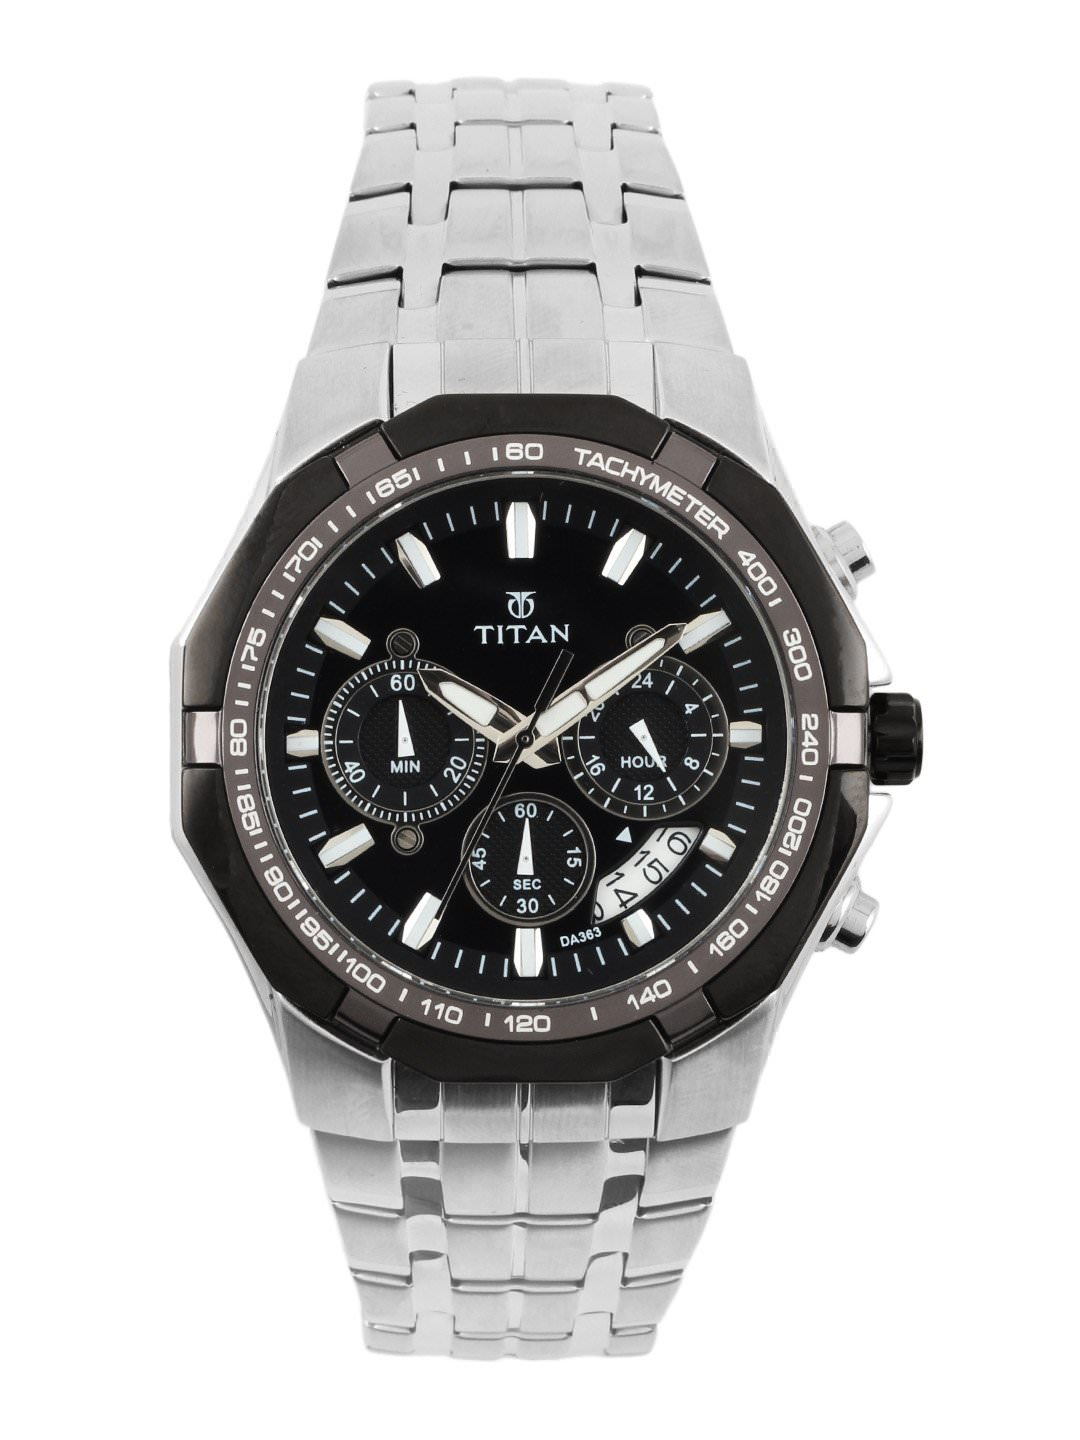 customer satisfaction of titan watch Importantabout consumer perception of titan watches is not asked yet   please ask for consumer perception of titan watches by click hereour team/forum.